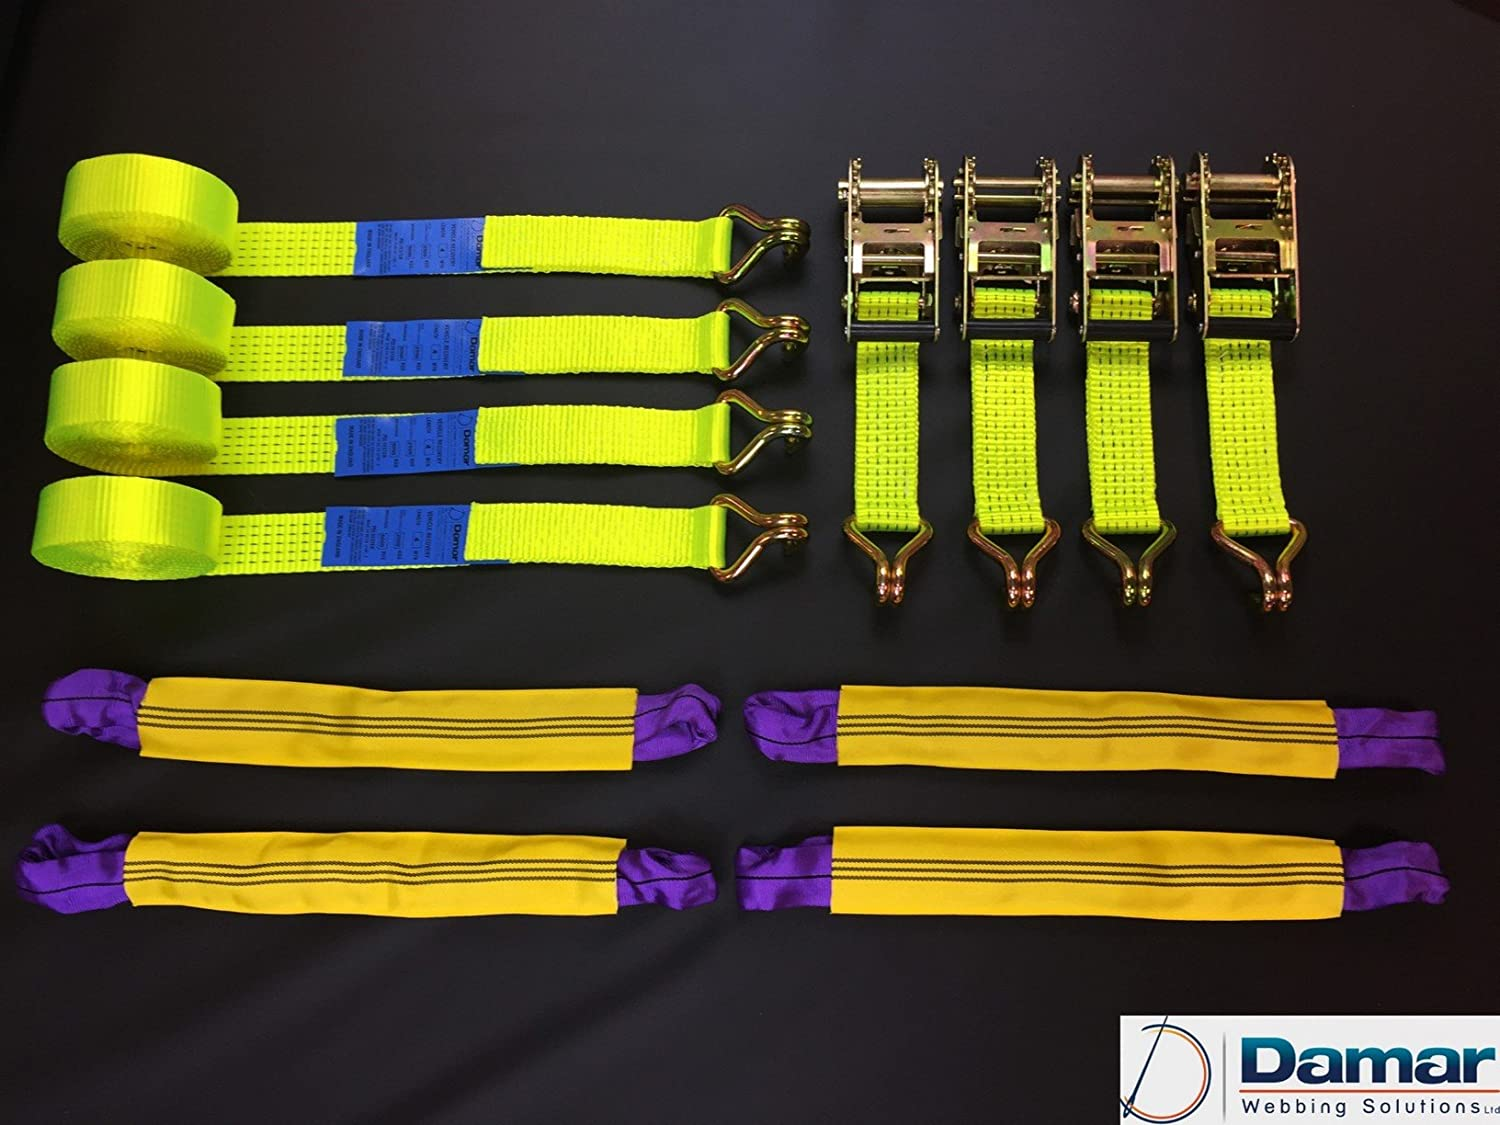 4 x 4mtr Car Transporter, Recovery ratchet Strap Set, Hi Vis Yellow Damar Webbing Solutions Ltd